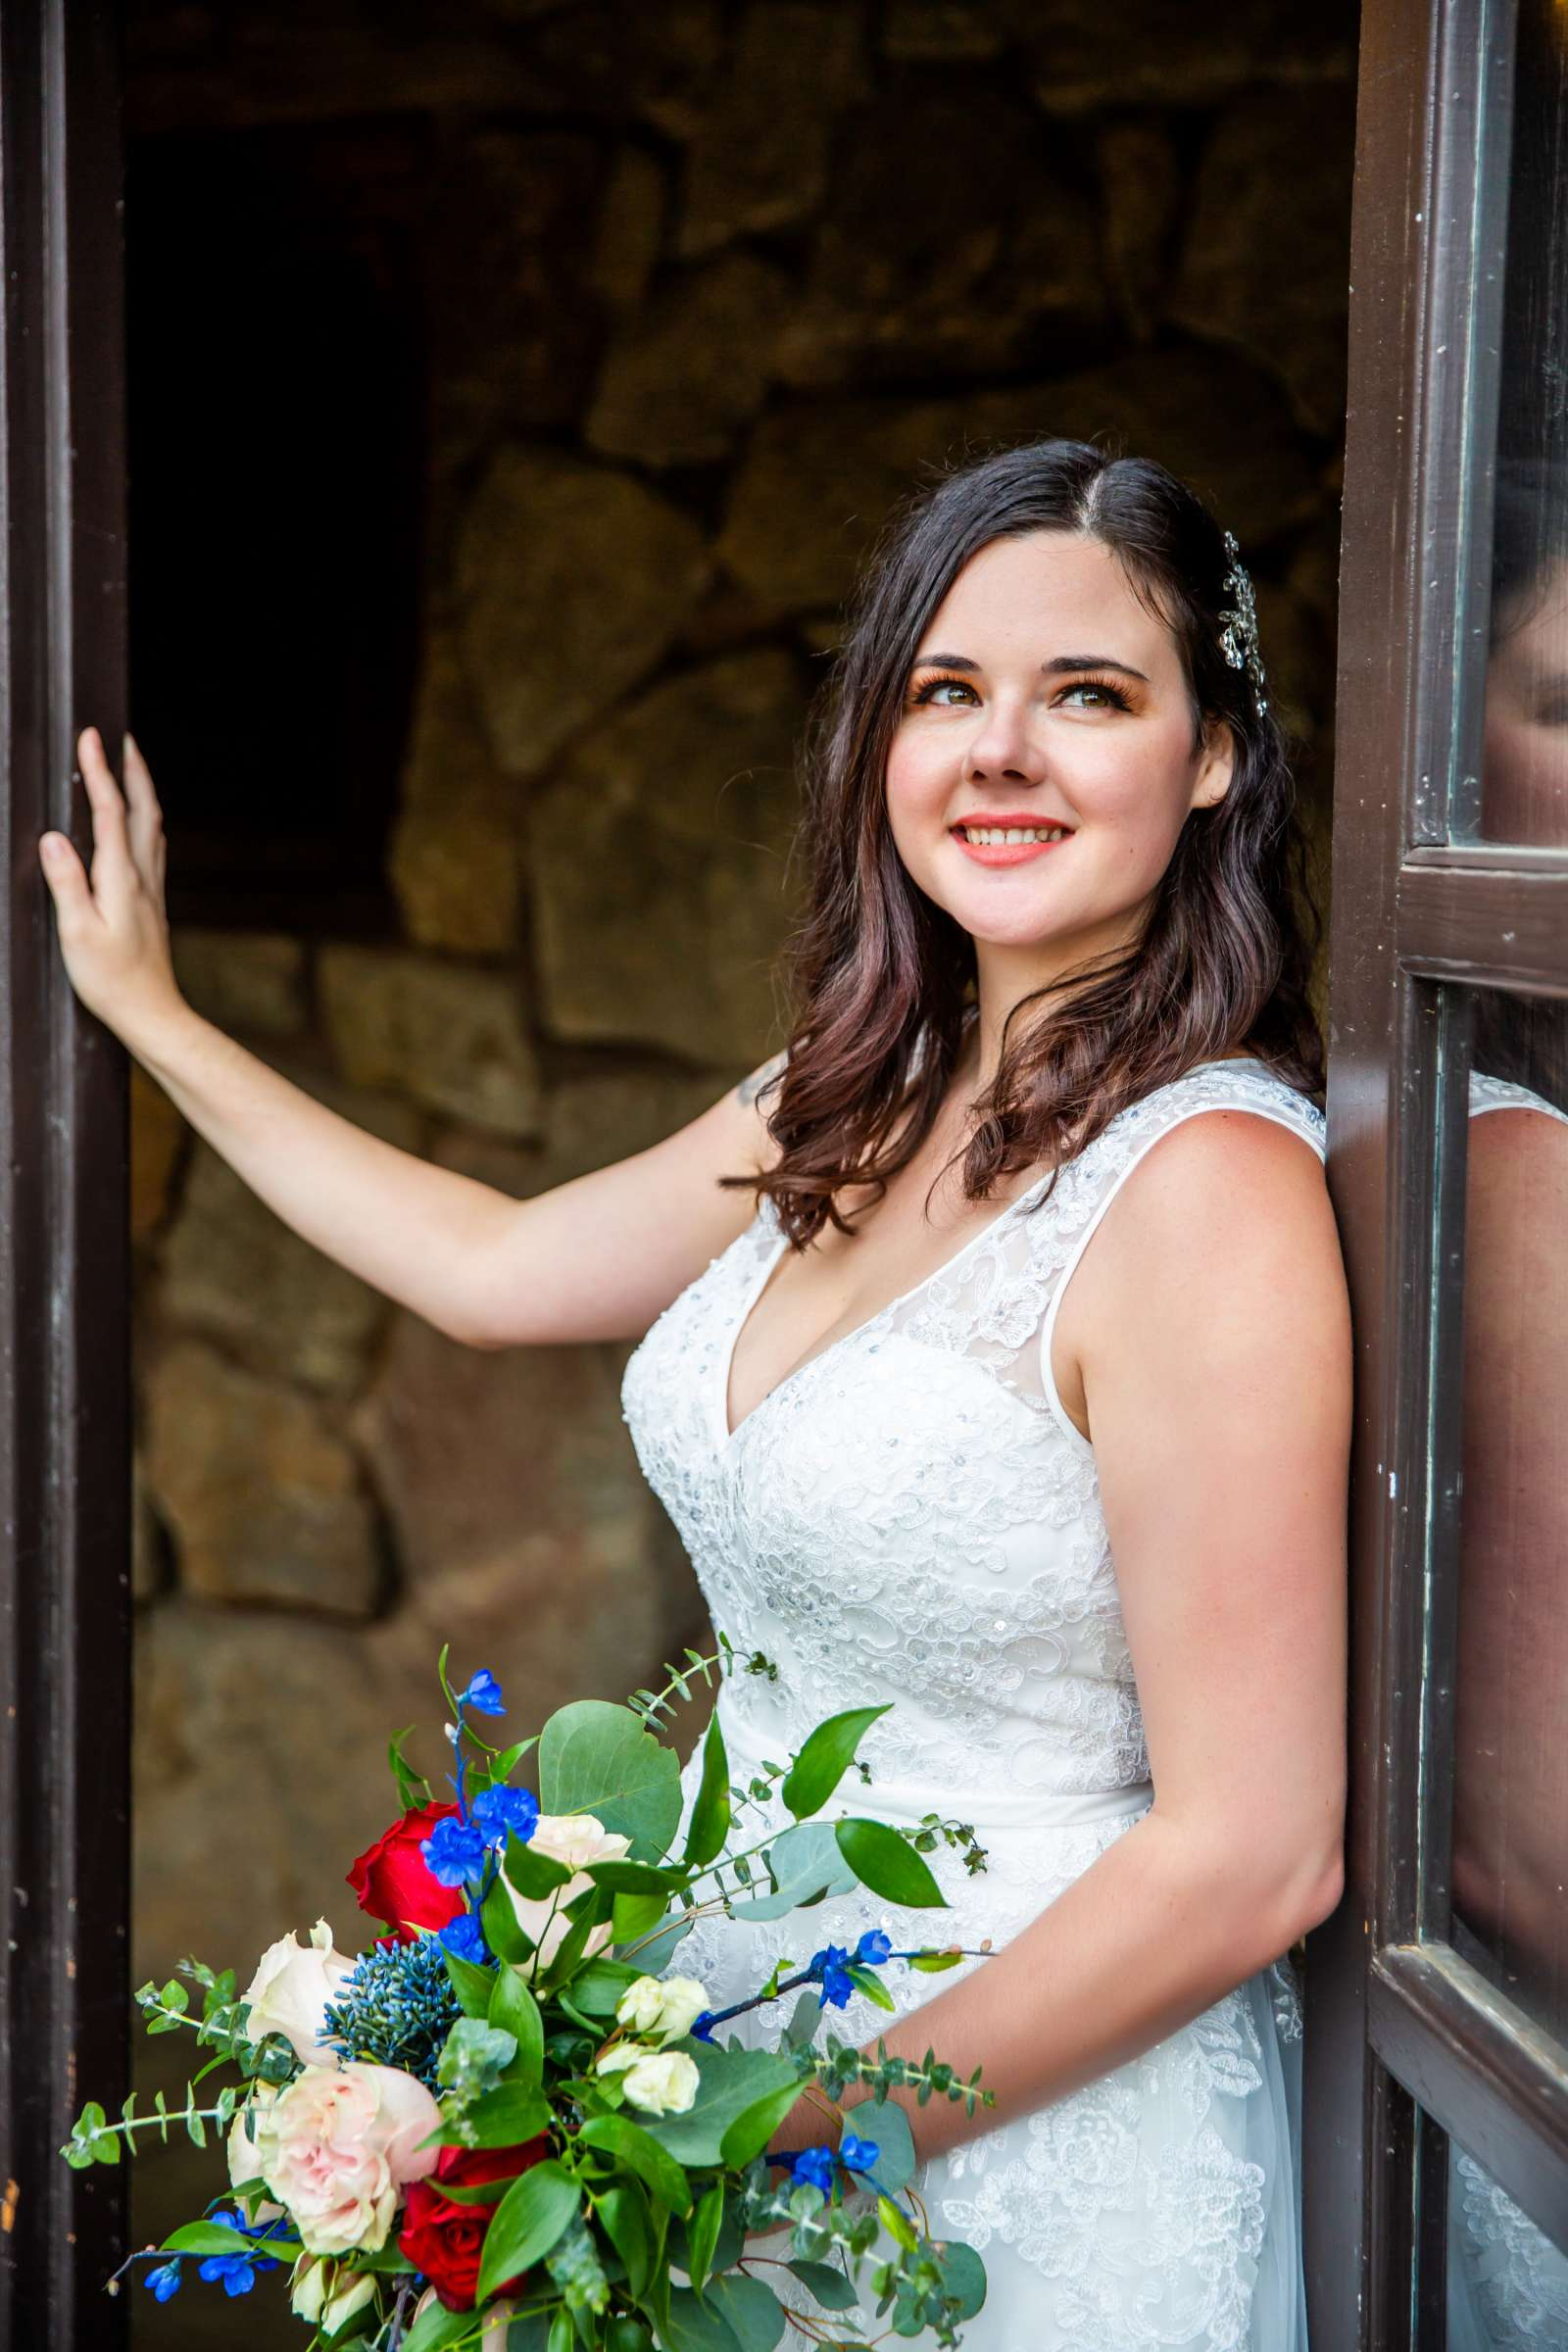 Mt Woodson Castle Wedding, Valerie and Ian Wedding Photo #29 by True Photography